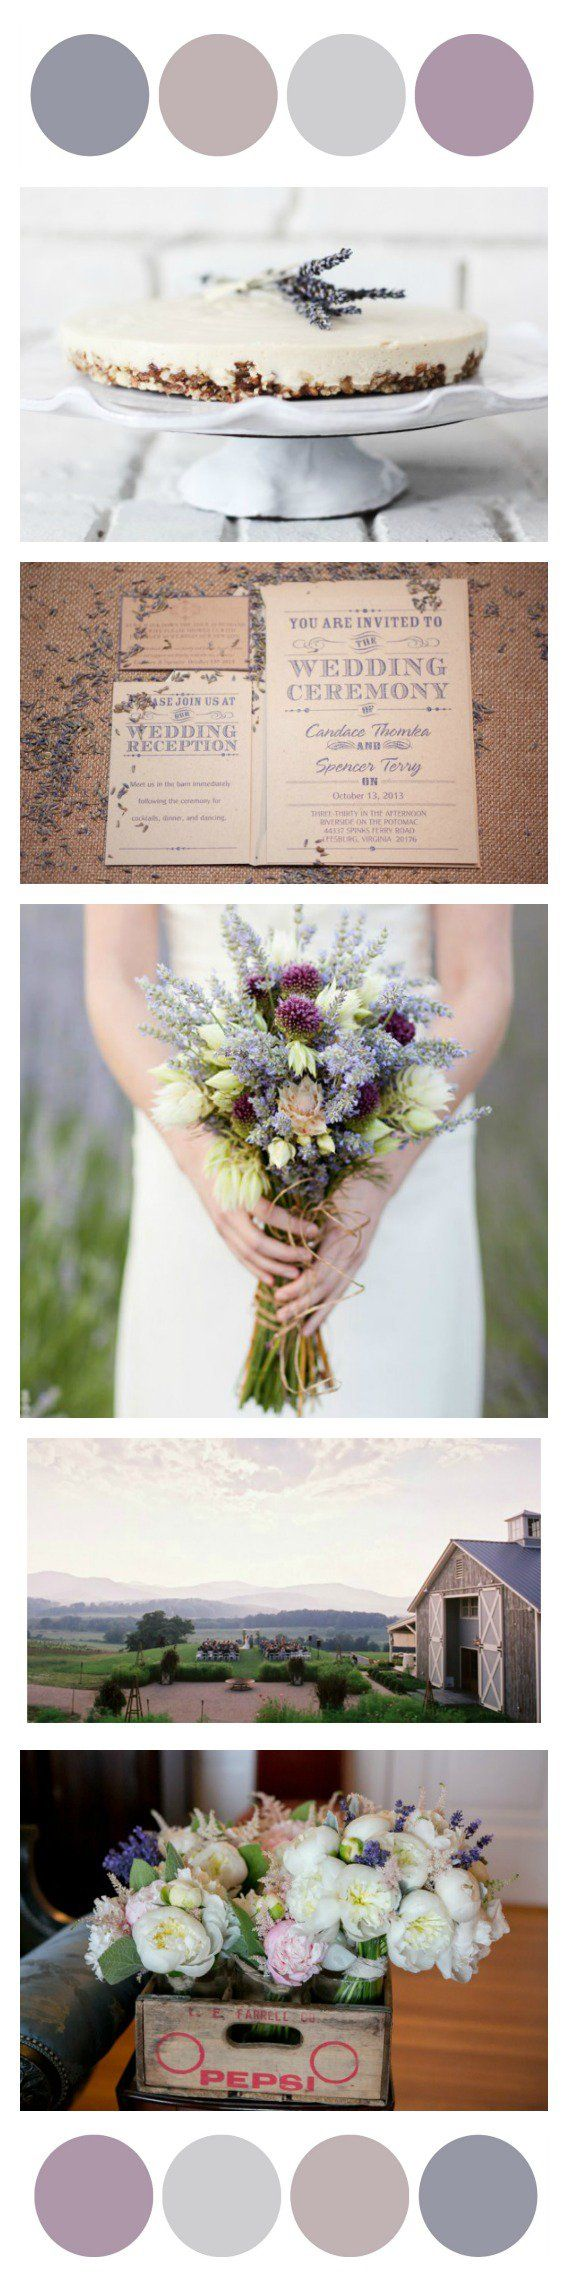 Lavender Wedding Color Inspiration - Rustic Wedding Chic